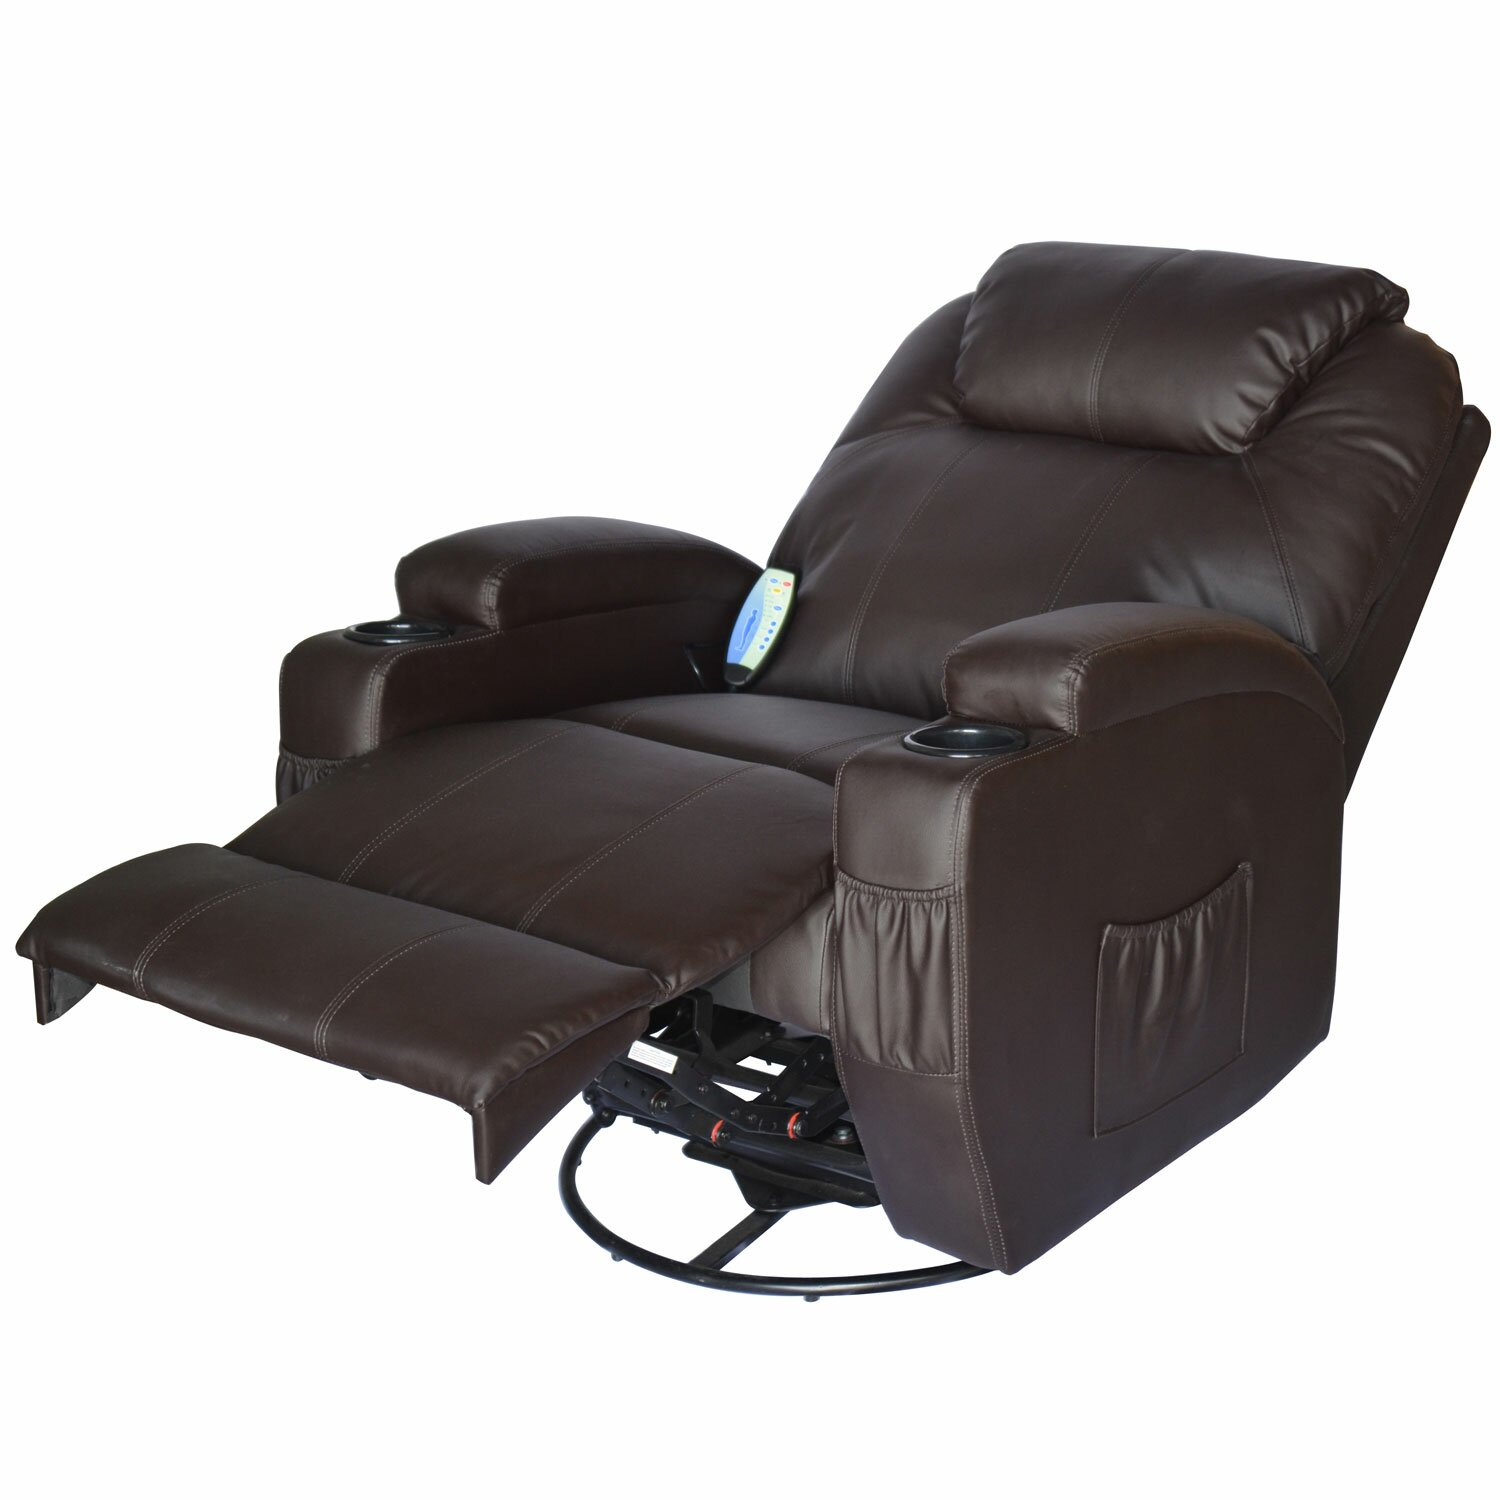 Outsunny HomCom Deluxe Heated Vibrating Vinyl Leather ...